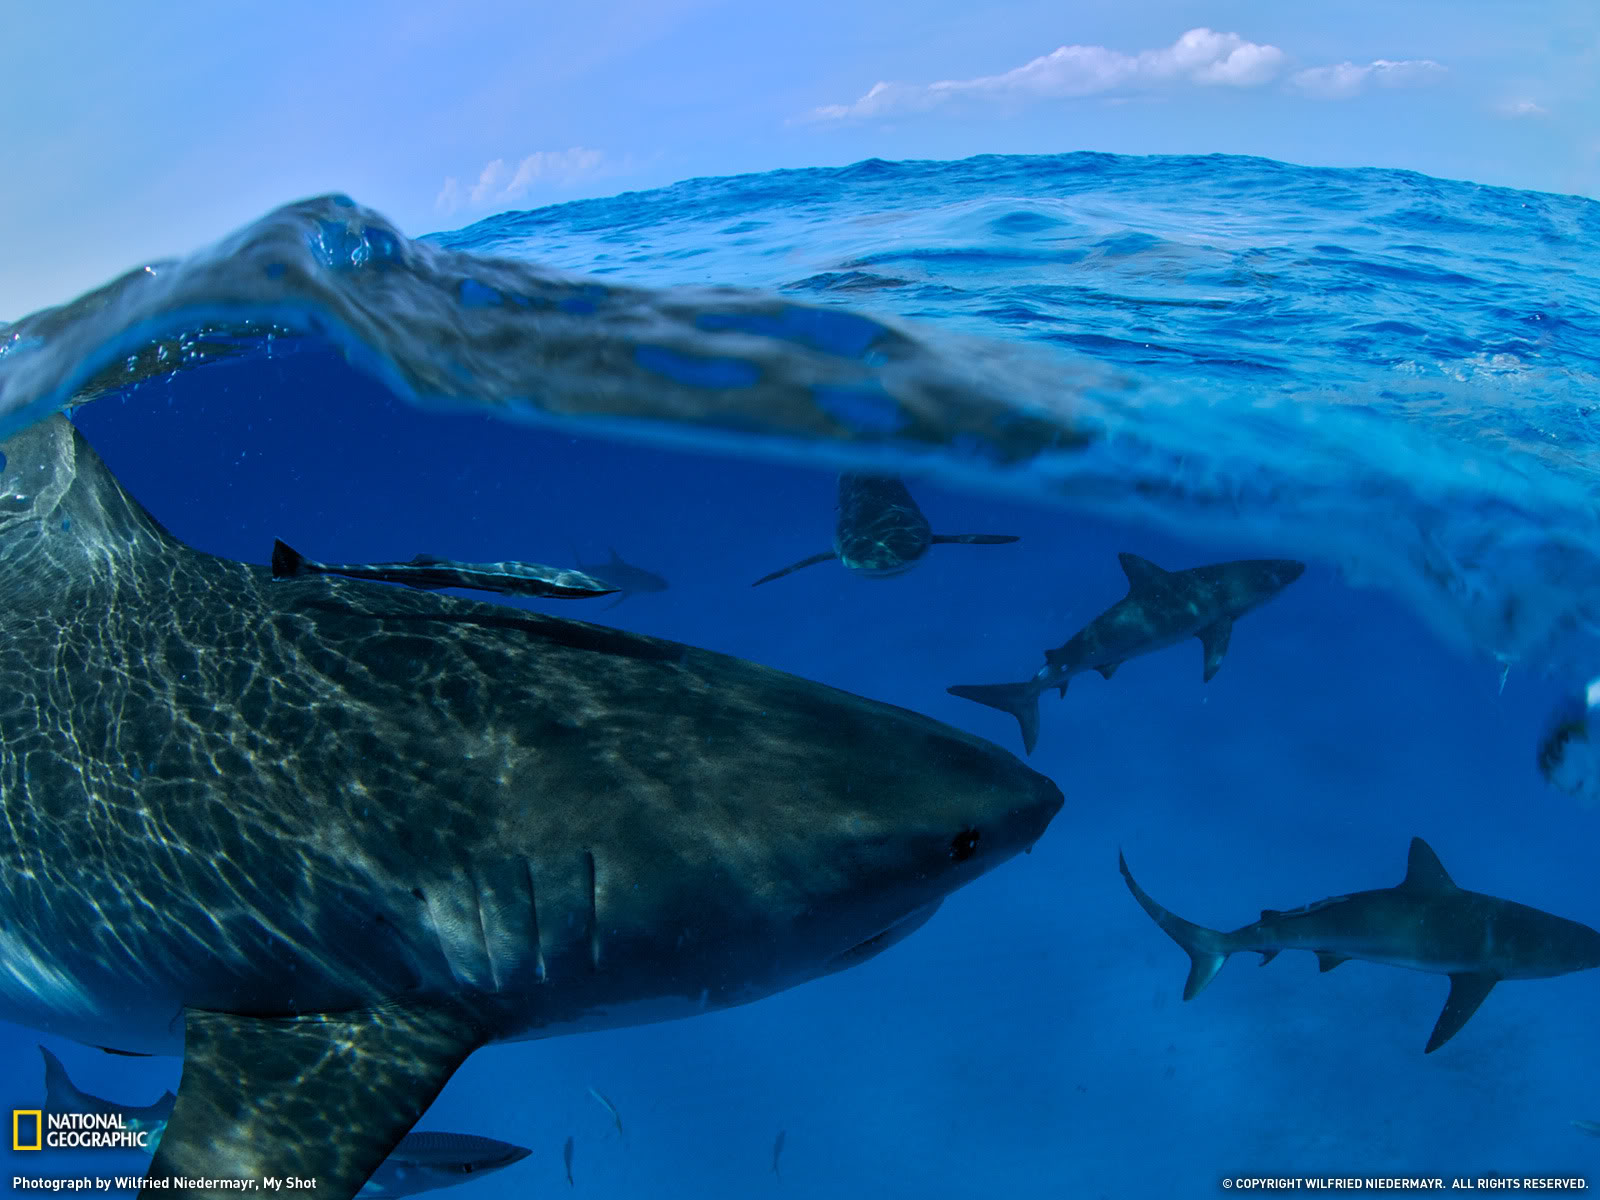 national geographic image of sharks